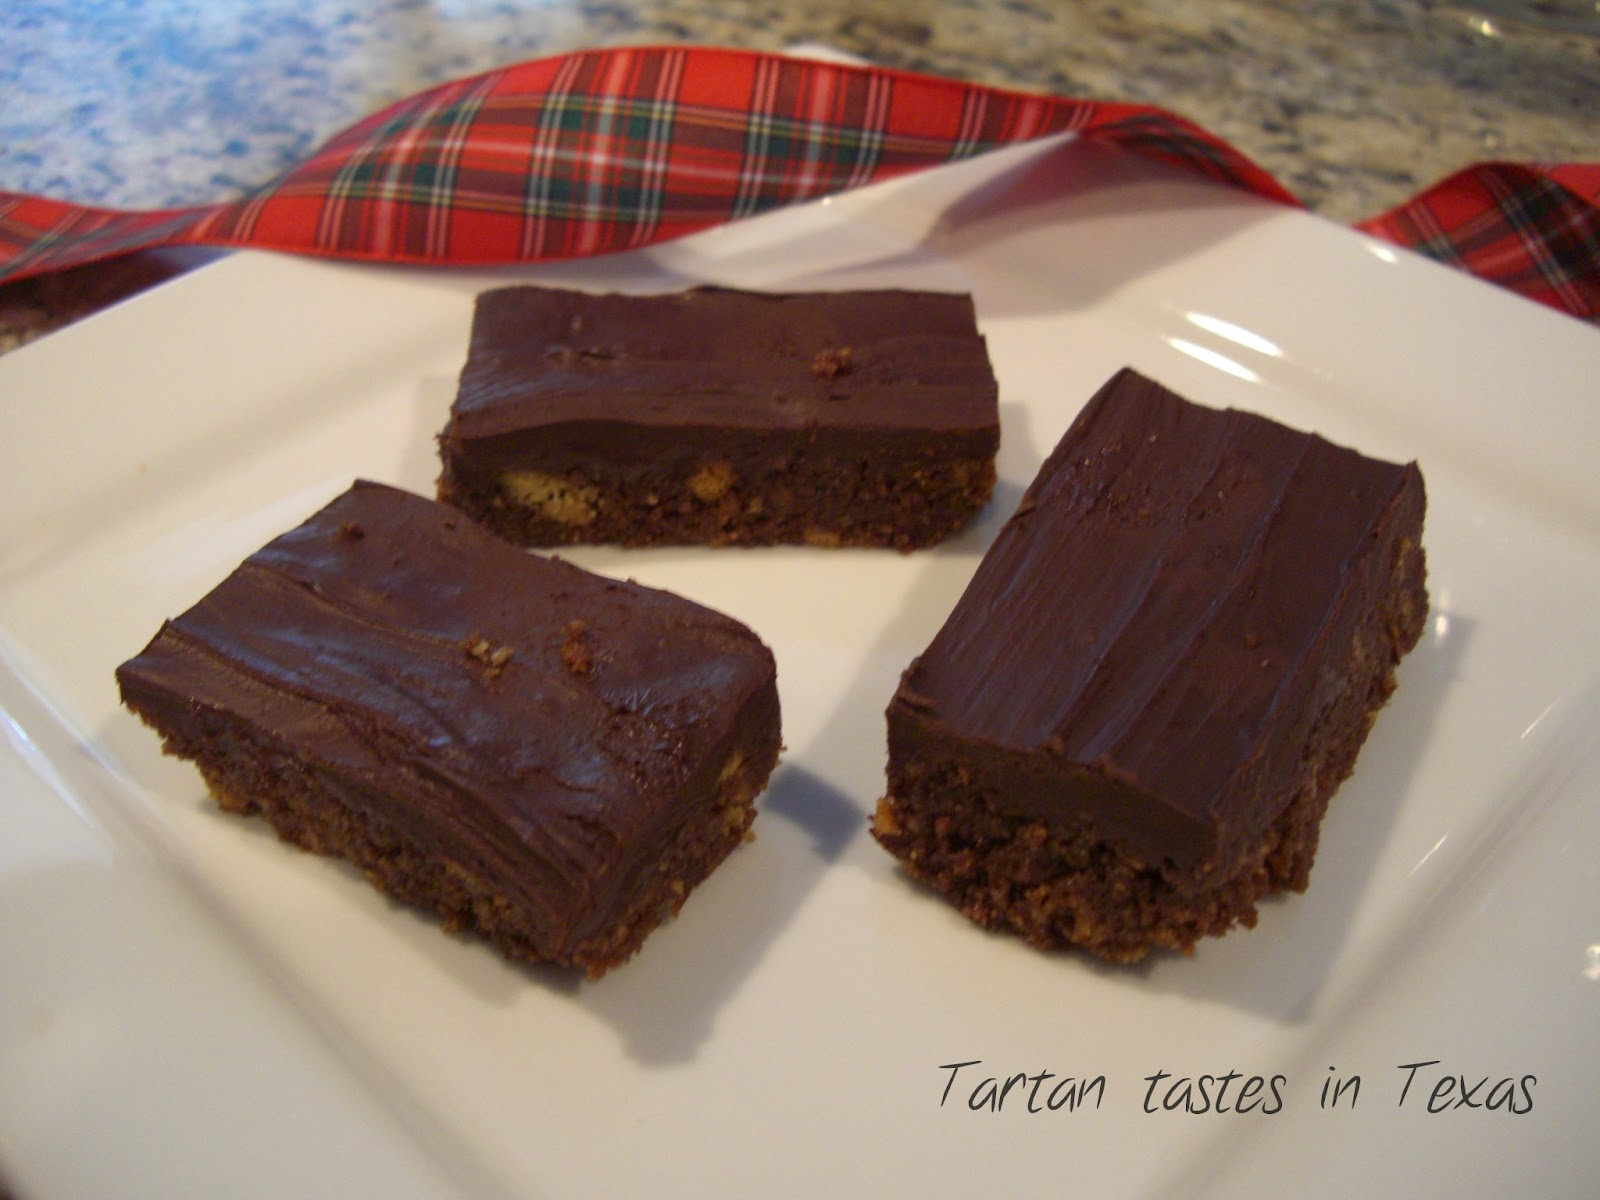 Tartan Tastes in Texas: Scottish Recipes - Chocolate Tiffin